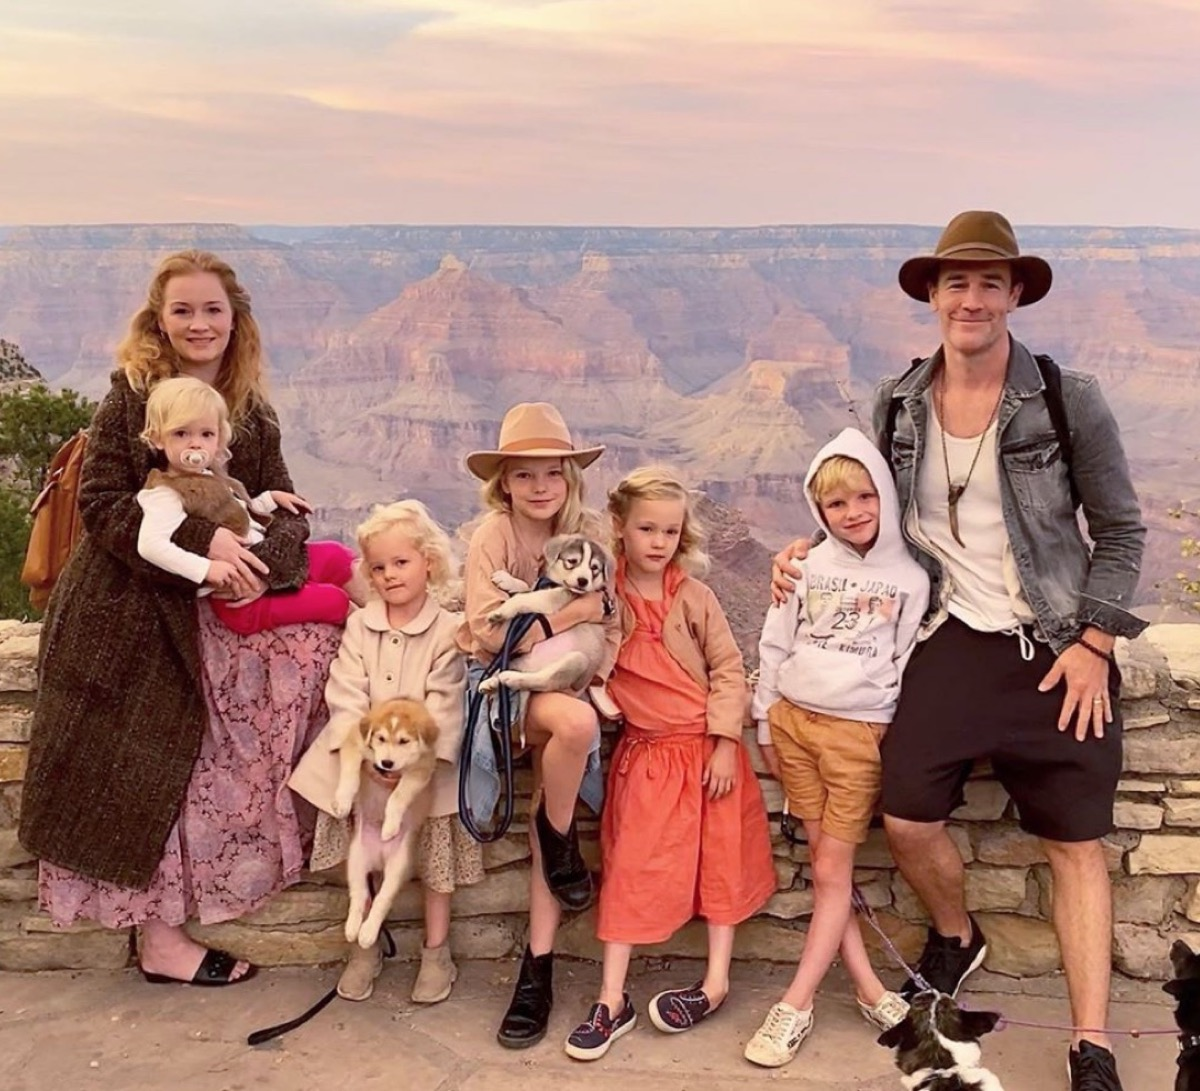 james van der beek with wife and five children and two dogs